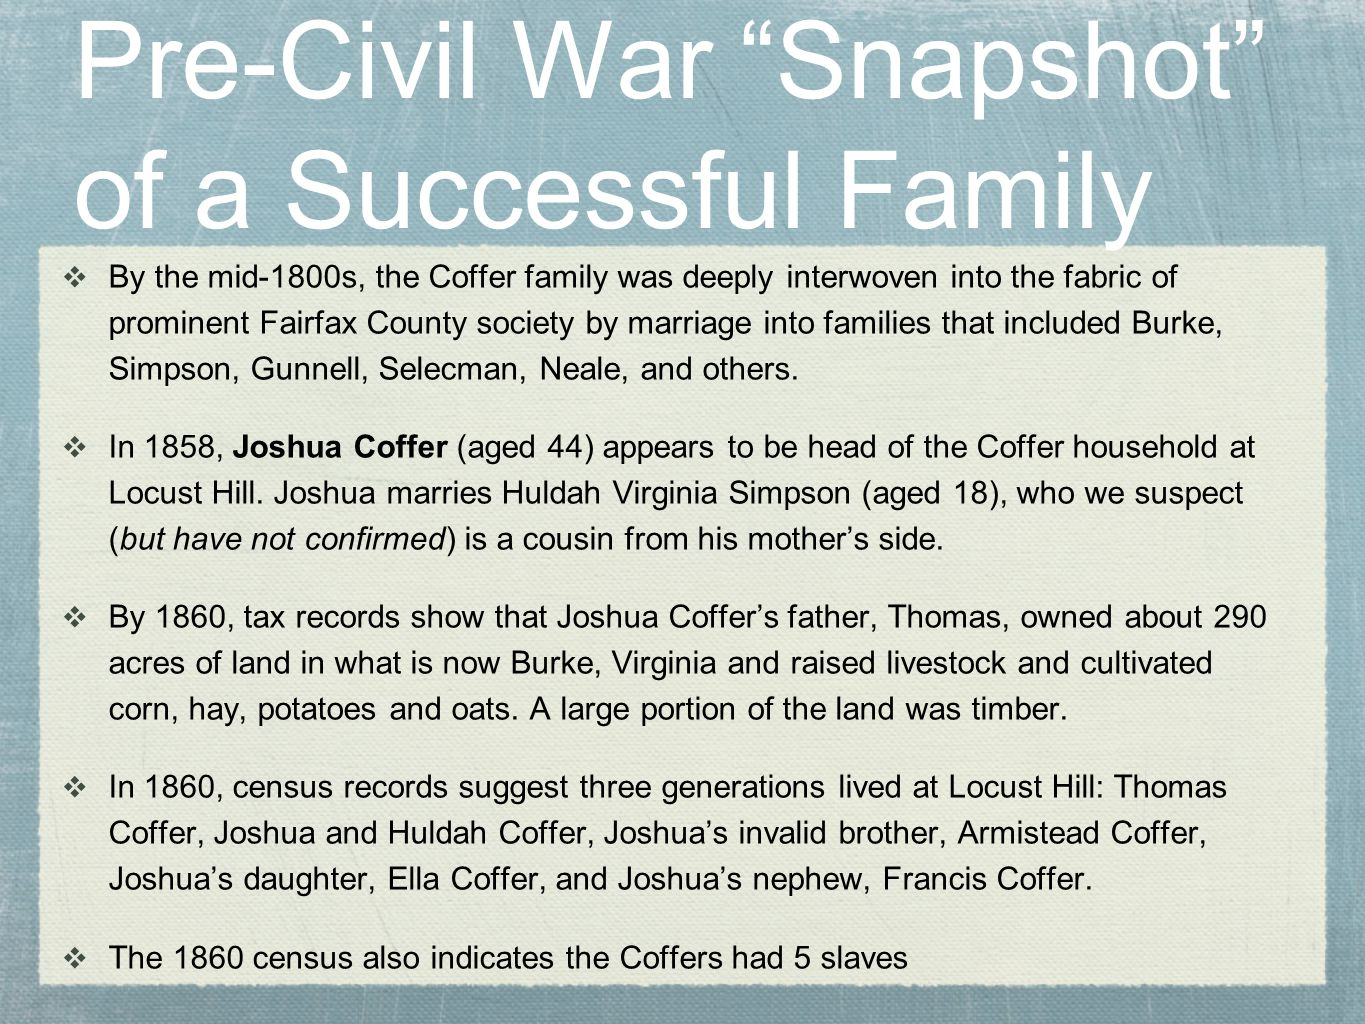 Pre-Civil War Snapshot of a Successful Family  By the mid-1800s, the Coffer family was deeply interwoven into the fabric of prominent Fairfax County society by marriage into families that included Burke, Simpson, Gunnell, Selecman, Neale, and others.